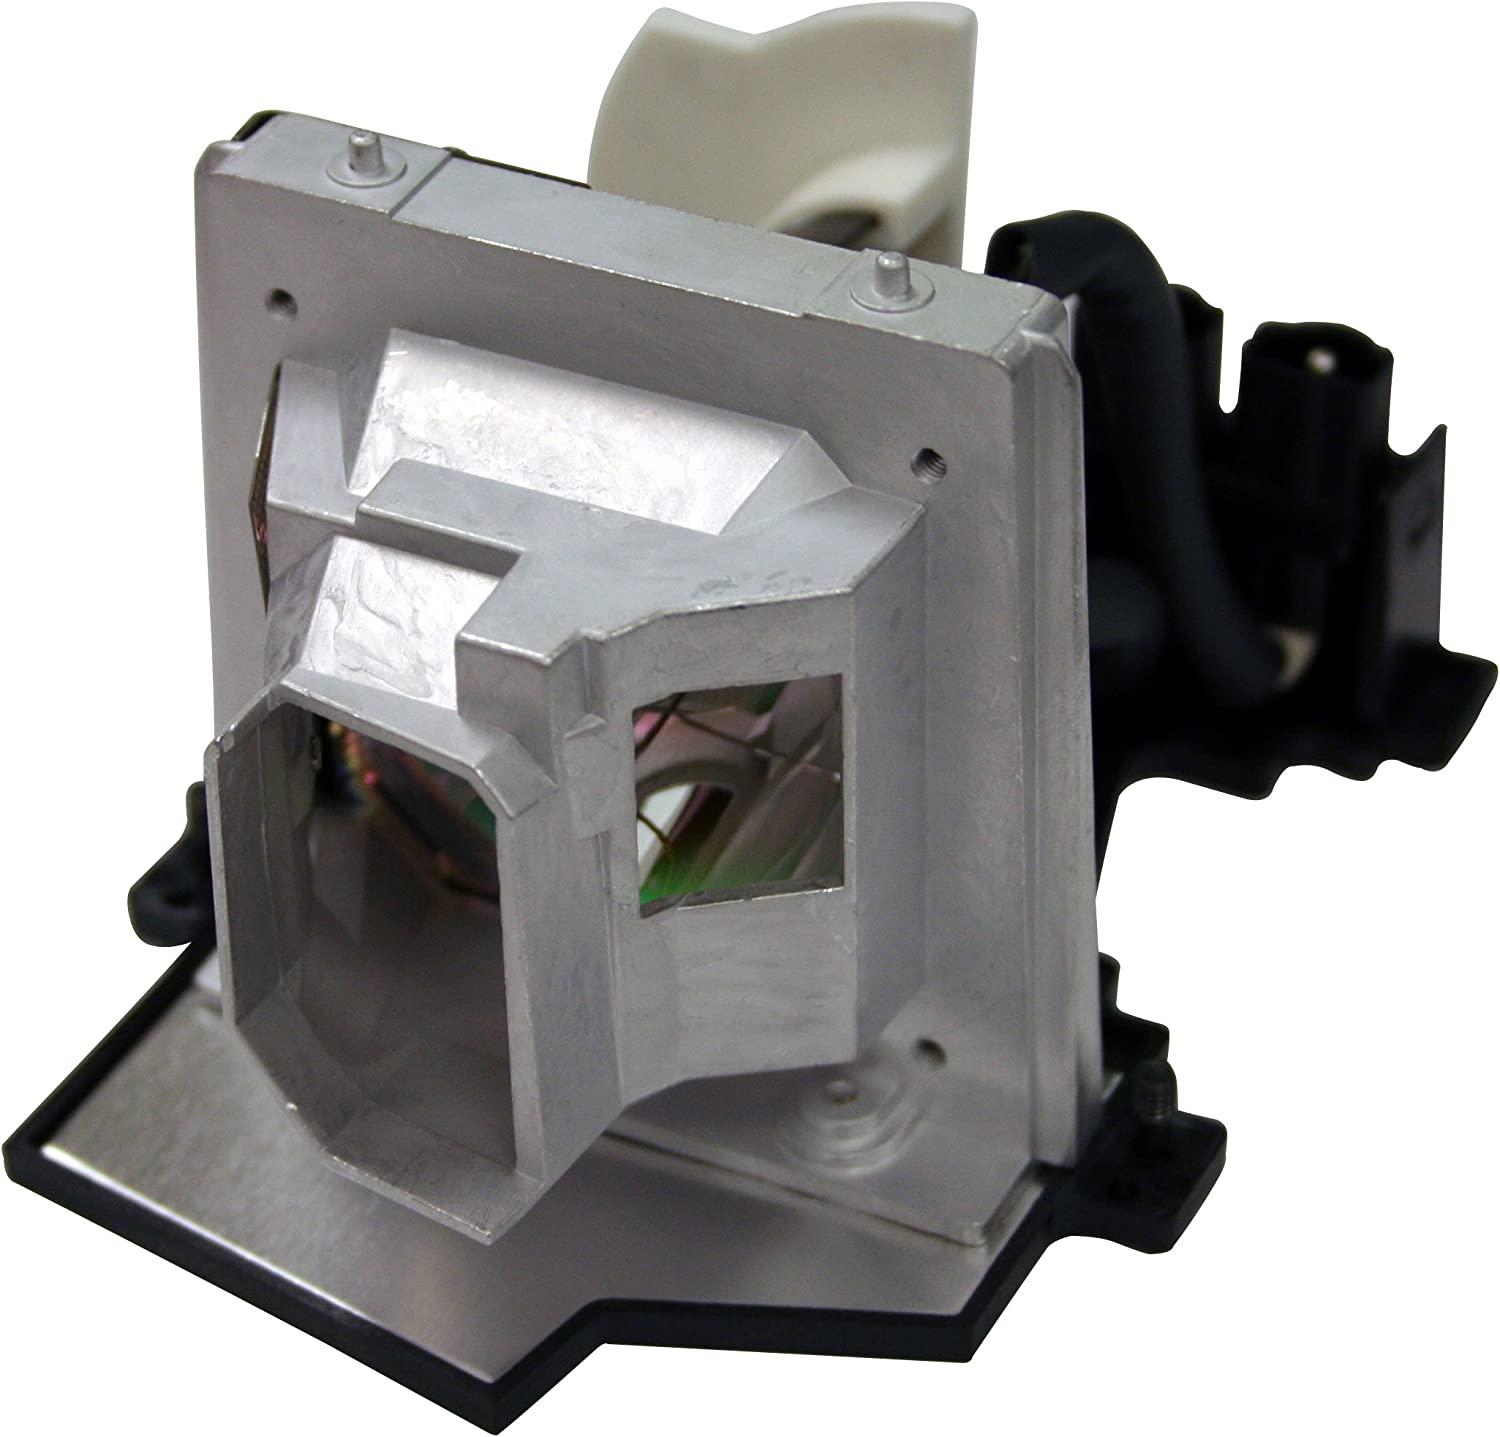 Optoma BL-FU180A, UHP, 180W Projector Lamp (Discontinued by Manufacturer)